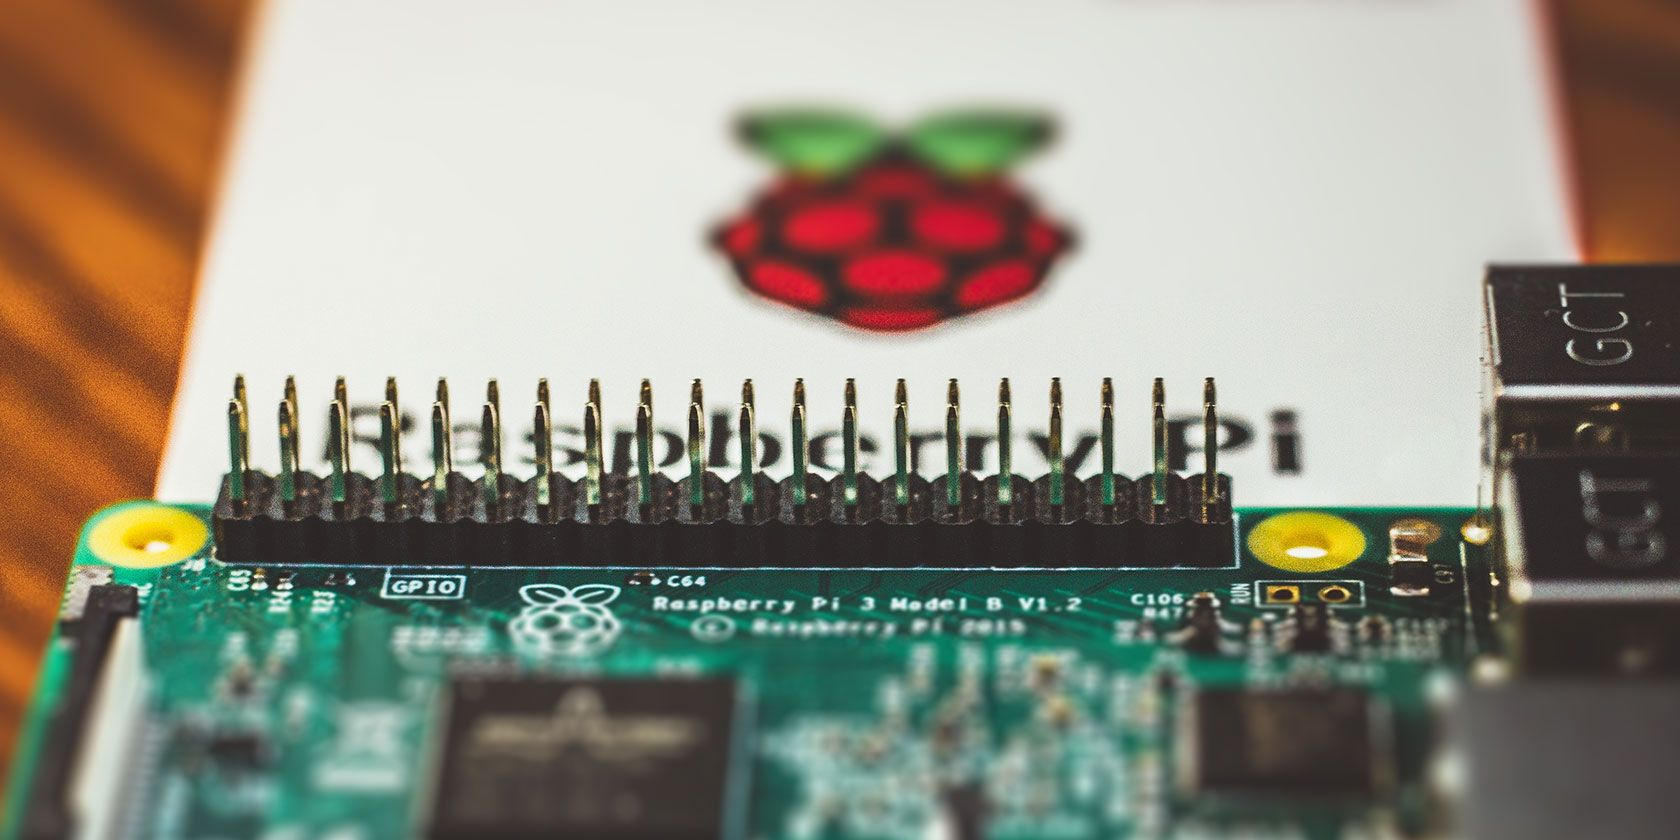 5 Raspberry Pi Digital Signage Projects You Should Try